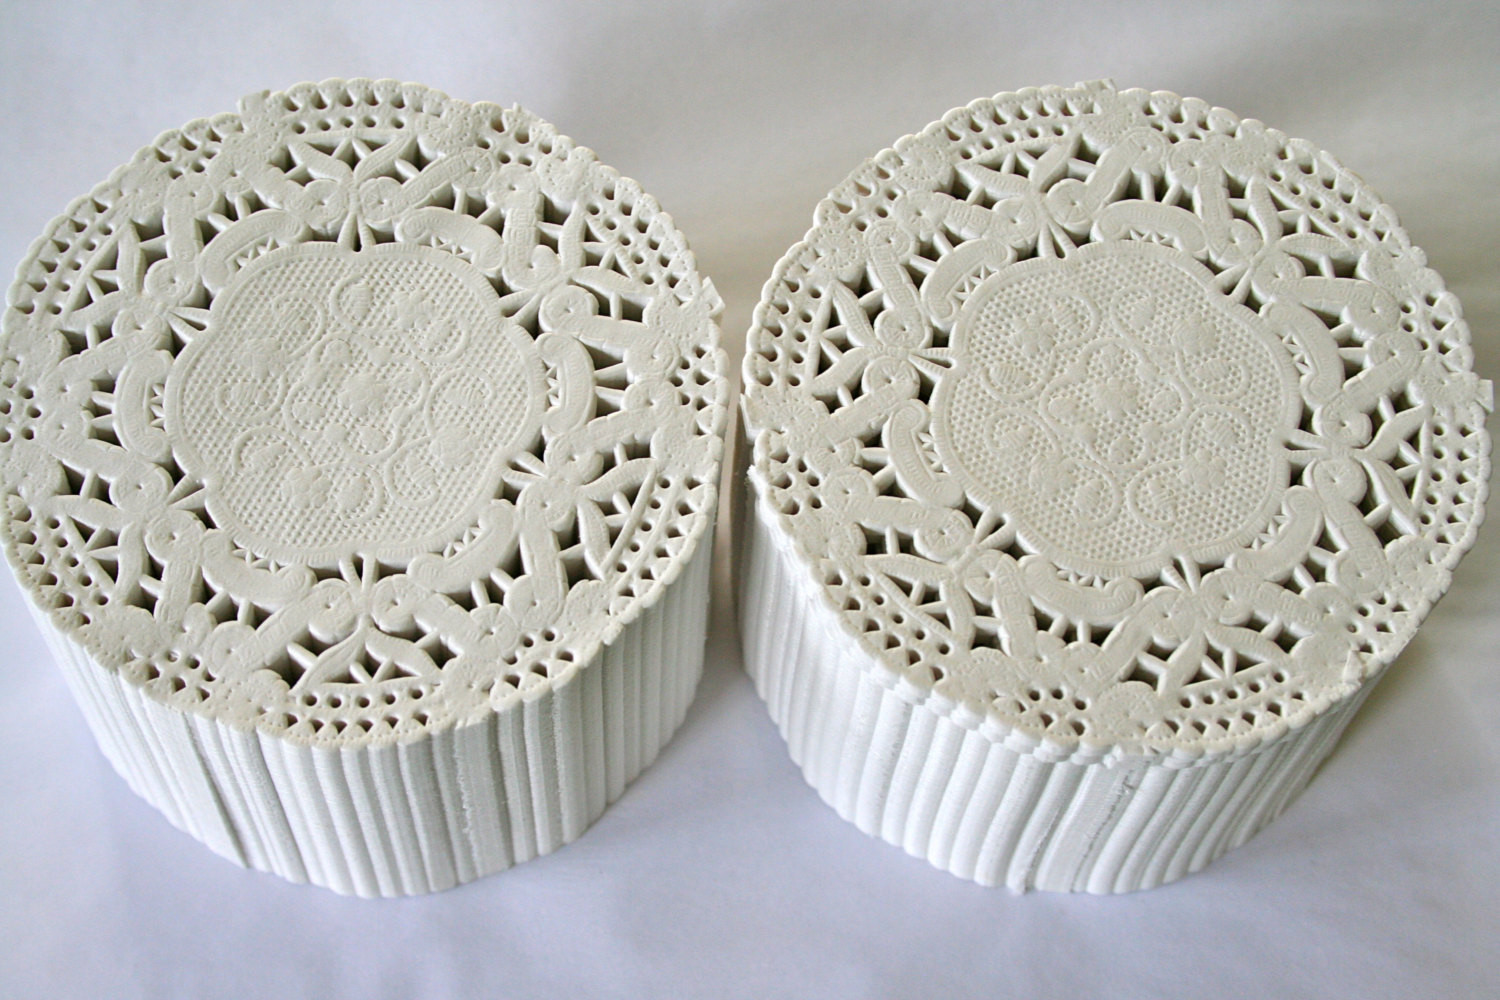 Red Paper Doilies Luxury 1000 French Lace Paper Doilies wholesale 3 5 Round Of Great 49 Images Red Paper Doilies